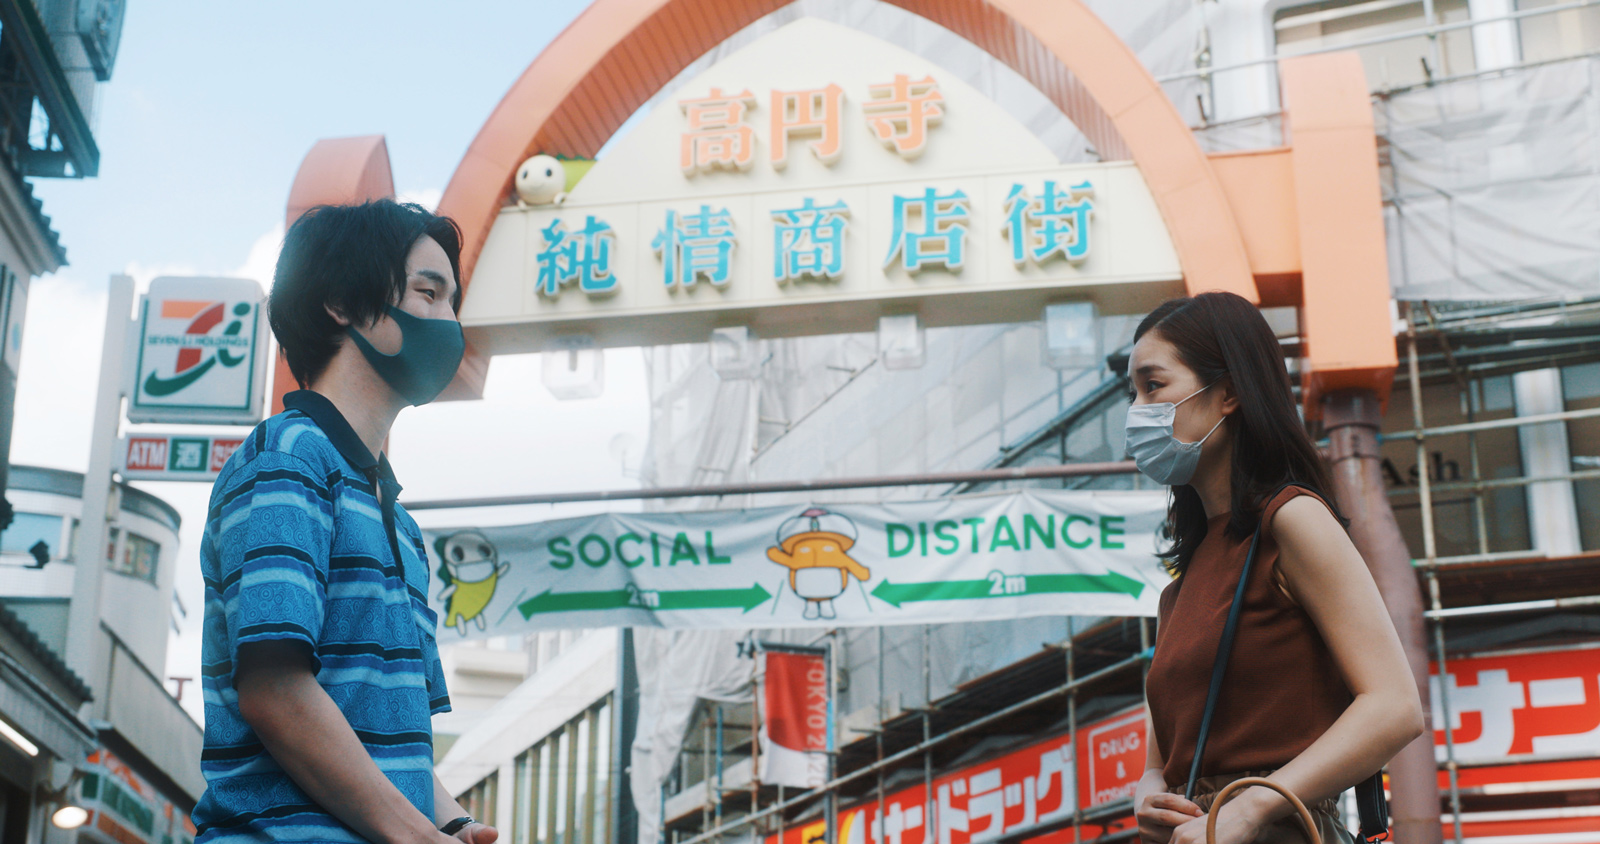 Photo of two people wearing masks with a social distancing sign behind them.